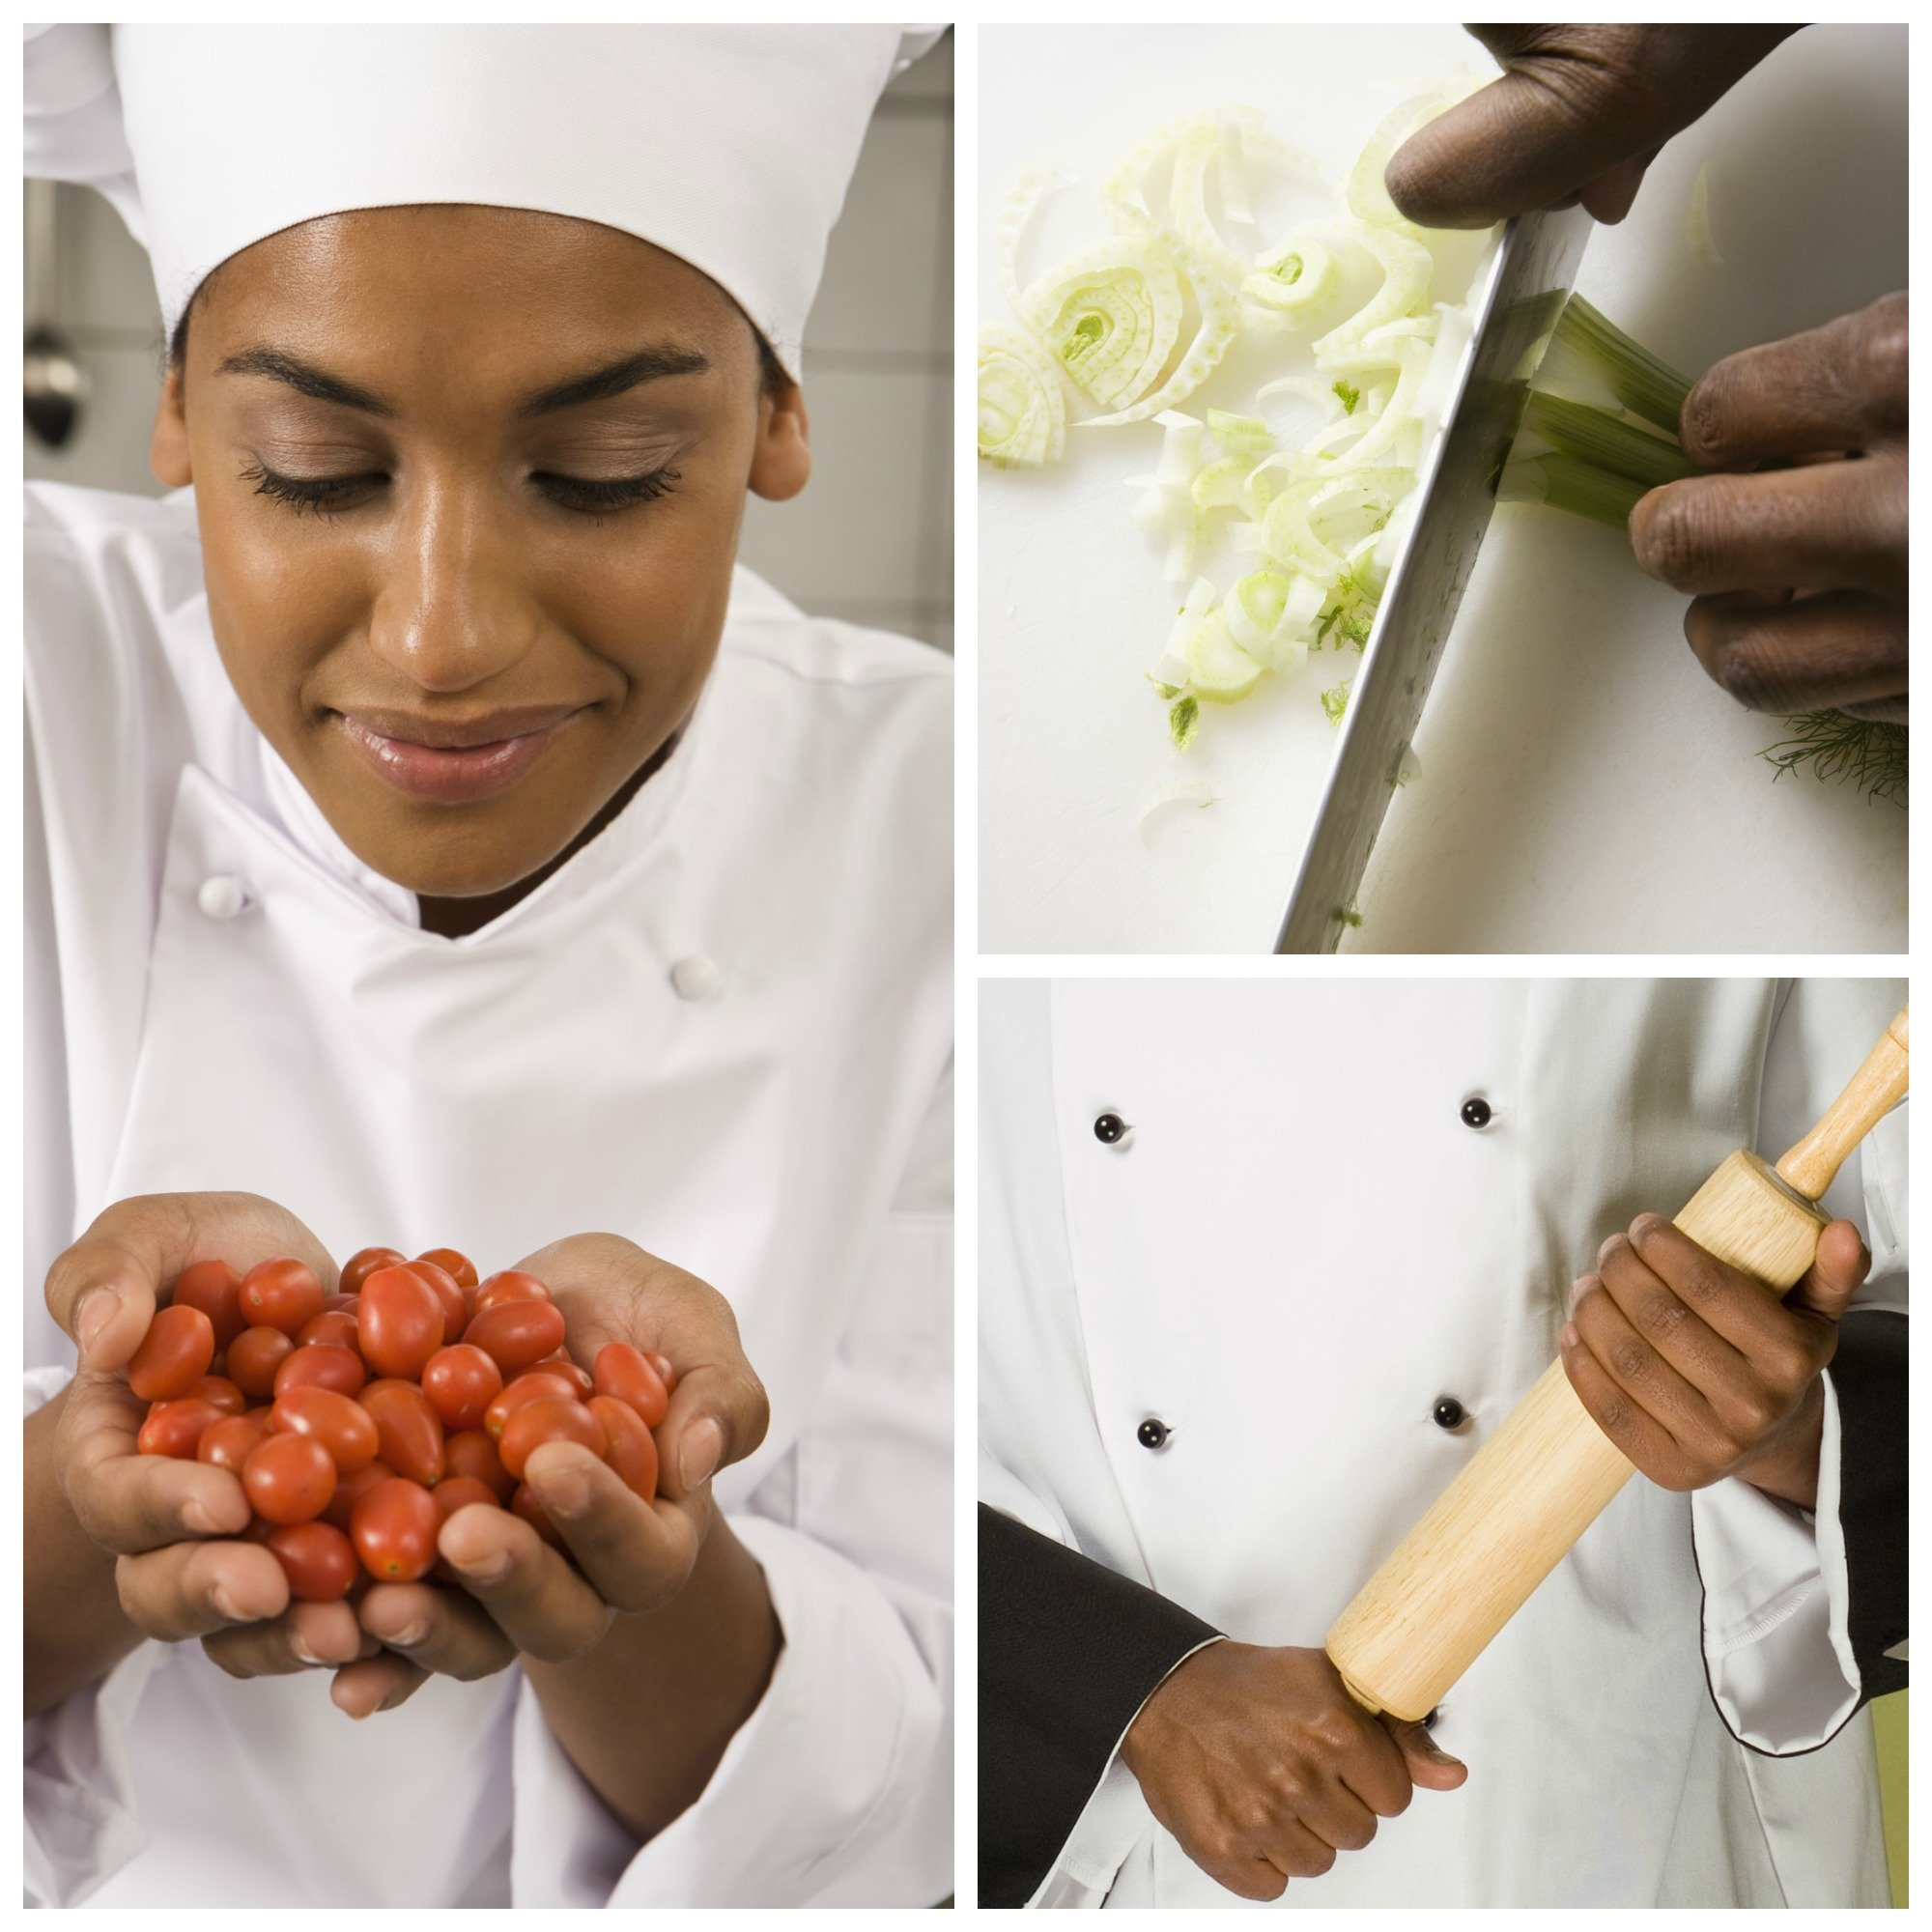 Http Www Pbs Org Black Culture Explore Black Chefs